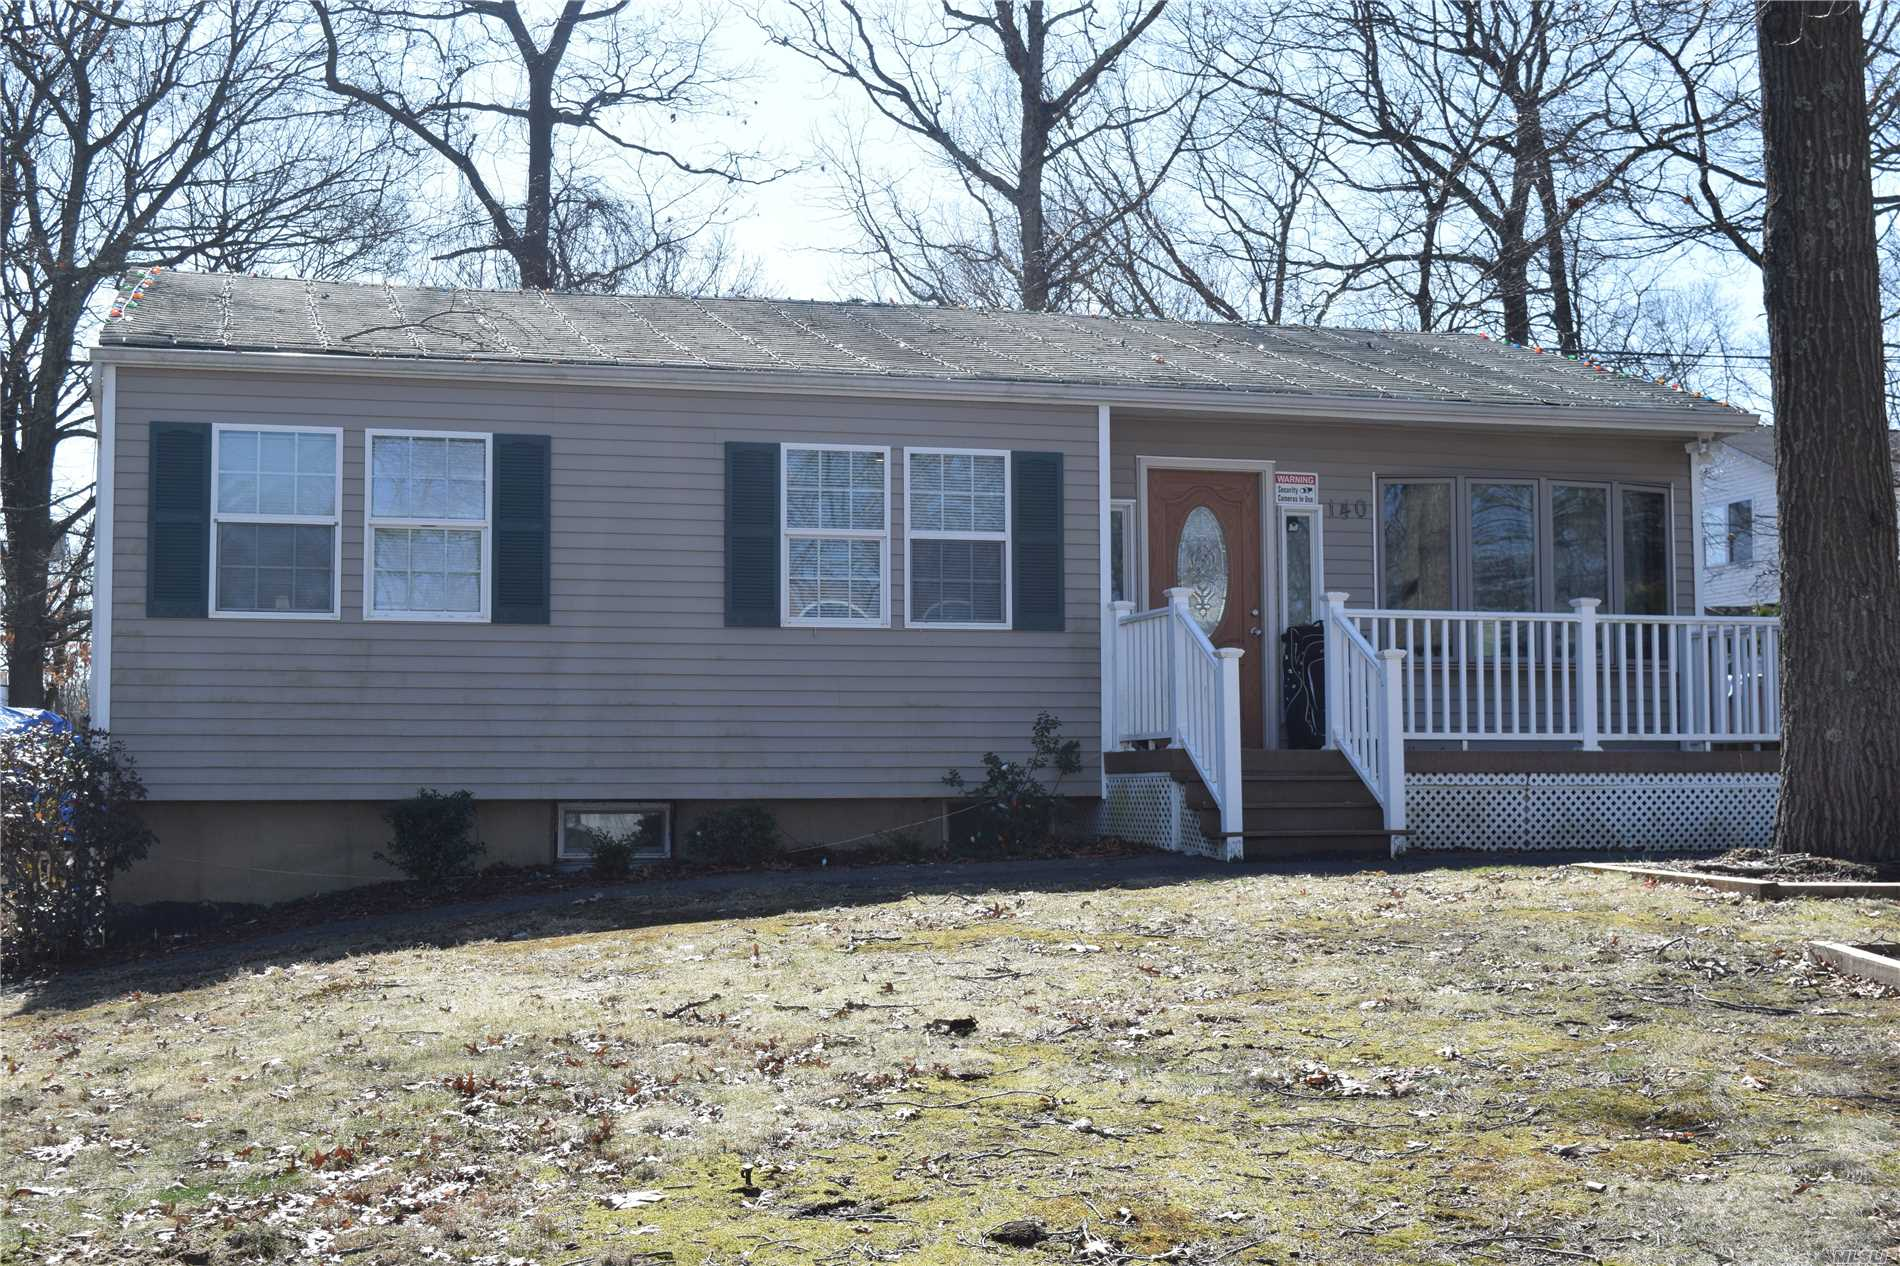 Spacious 4 Bedroom, 2 Bath Ranch, Large Property, Close To Shopping, Finished Basement W/Exit To Yard. Recently Renovated Kitchen & Basement, Hardwood Floors. Low Taxes.Taxes W/Star $7, 108.68